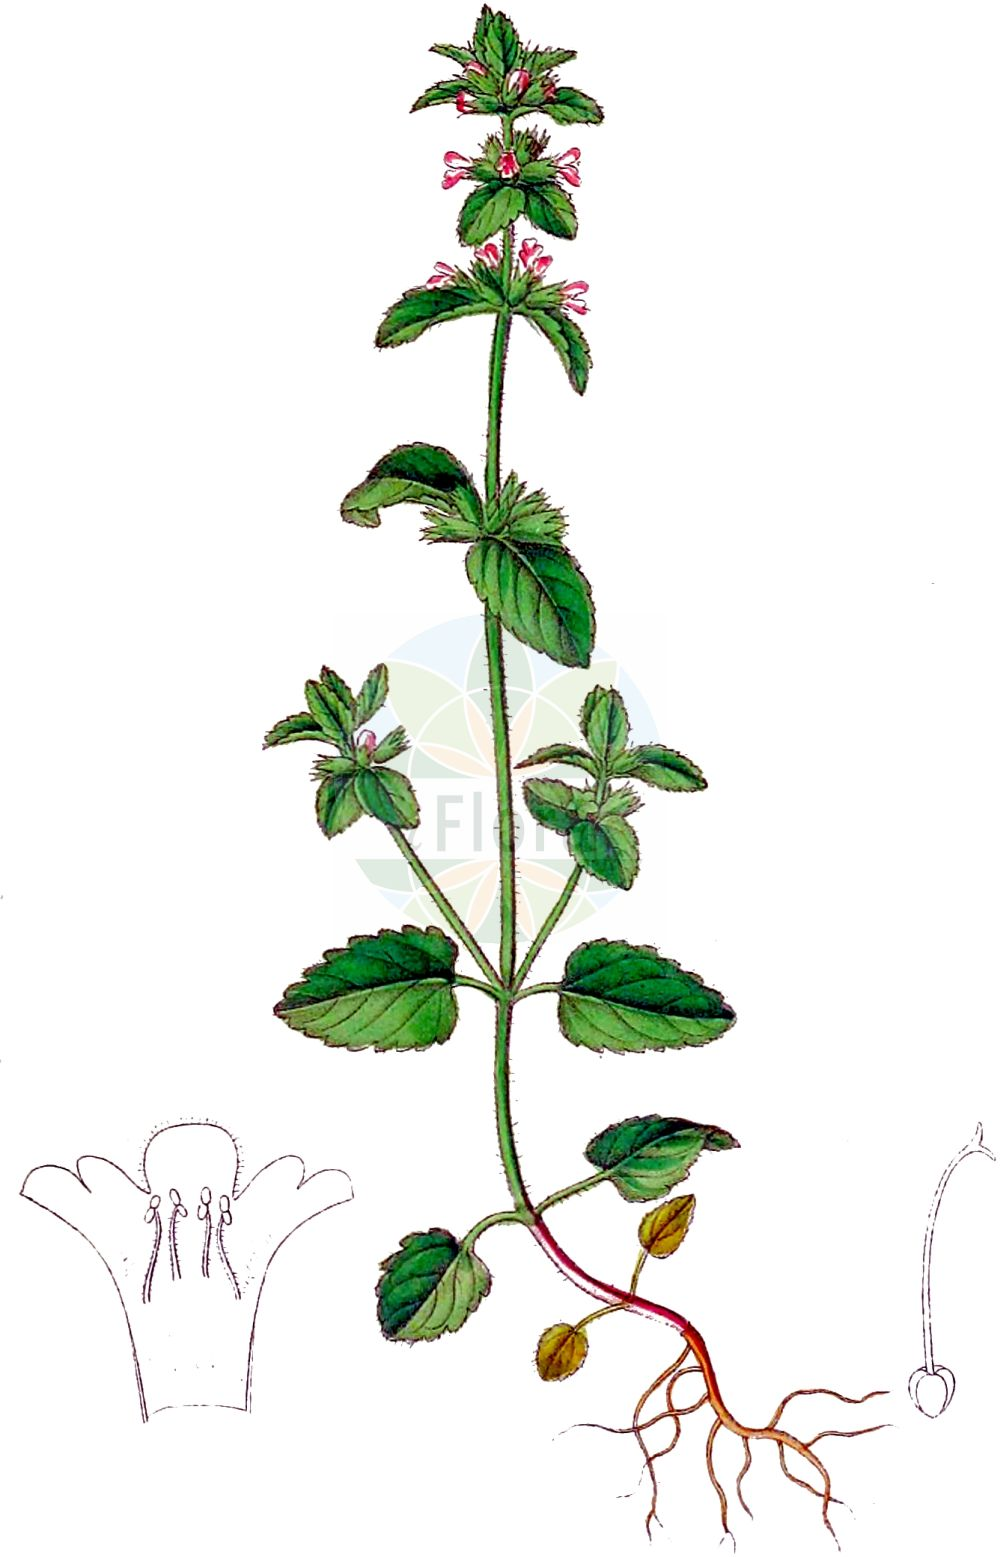 Historische Abbildung von Stachys arvensis (Acker-Ziest - Field Woundwort). Das Bild zeigt Blatt, Bluete, Frucht und Same. ---- Historical Drawing of Stachys arvensis (Acker-Ziest - Field Woundwort).The image is showing leaf, flower, fruit and seed.(Stachys arvensis,Acker-Ziest,Field Woundwort,Cardiaca arvensis,Glechoma arvensis,Glechoma belgica,Glechoma marrubiastrum,Stachys arvensis,Stachys brasiliensis,Trixago arvensis,Trixago colorata,Trixago cordifolia,Trixago punctata,Trixella arvensis,Acker-Ziest,Field Woundwort,Corn Woundwort,Field-nettle Betony,Staggerweed,Stachys,Ziest,Hedgenettle,Lamiaceae,Lippenbluetengewaechse,Lippenbluetler,Nettle family,Blatt,Bluete,Frucht,Same,leaf,flower,fruit,seed,Dietrich (1833-1844))